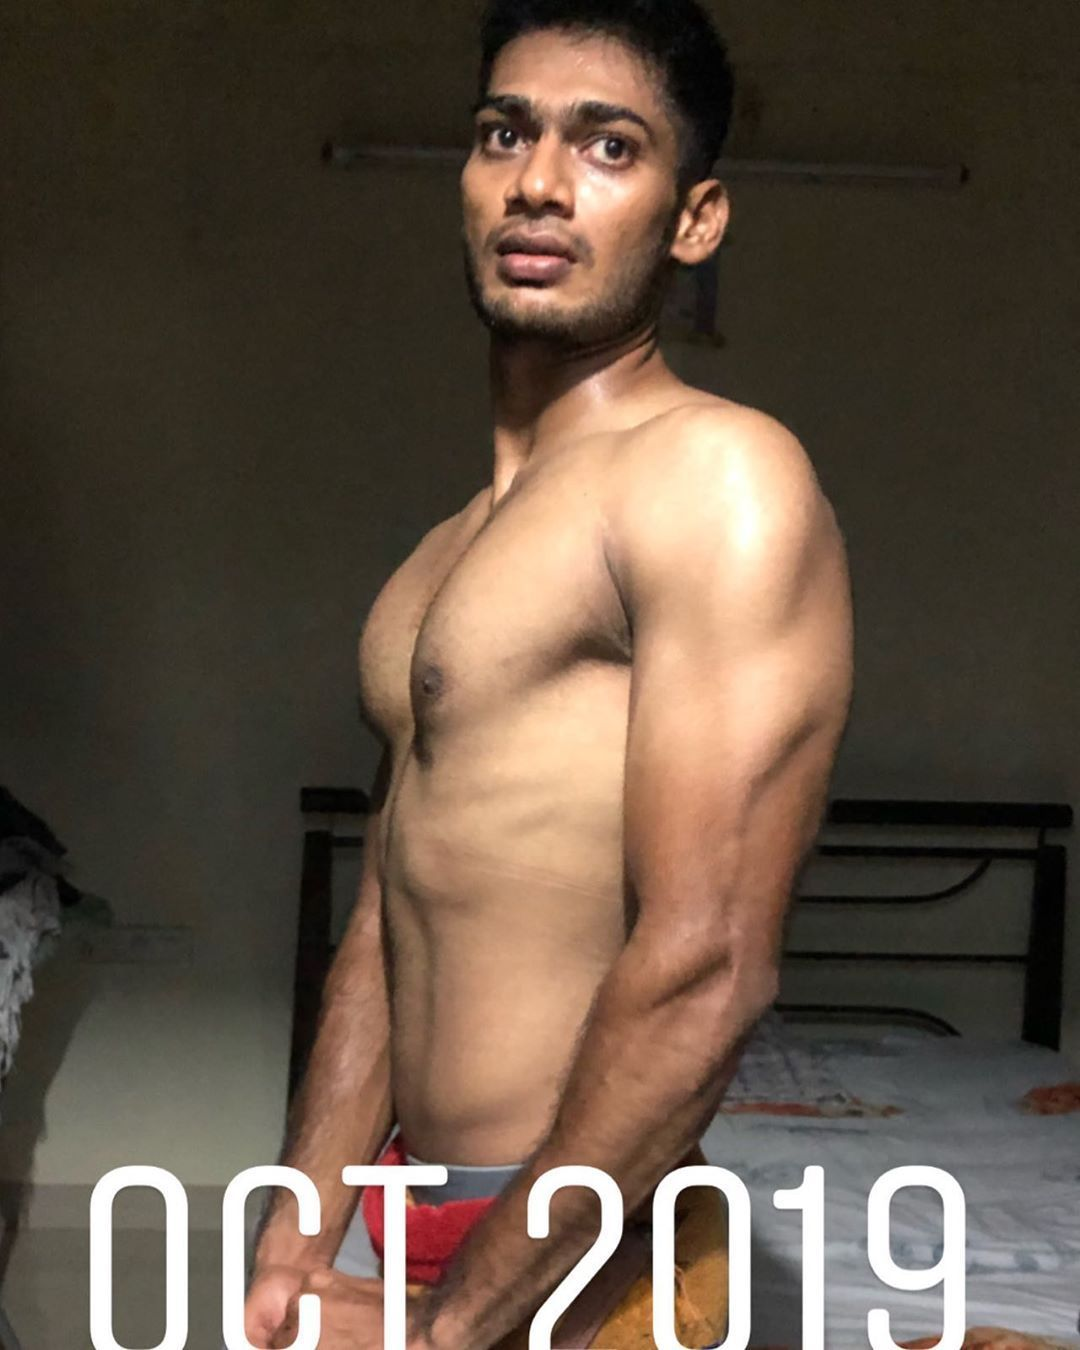 Natural gains to stay forever Always progress slowly - #naturalbodybuilding #bodybuilding #fitness #...